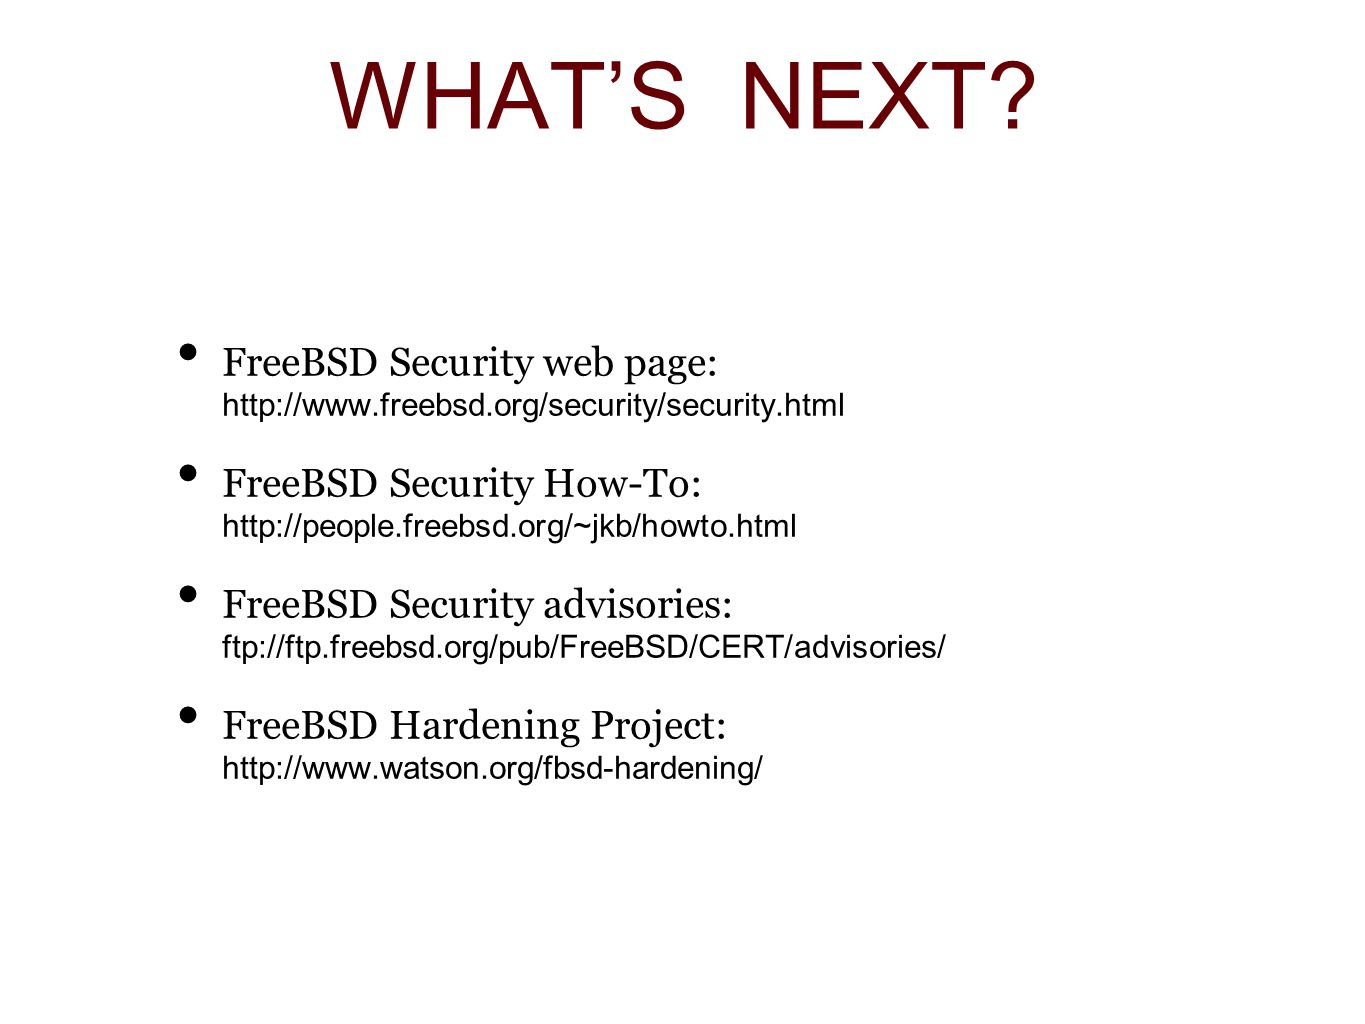 FreeBSD Security web page: http://www.freebsd.org/security/security.html FreeBSD Security How-To: http://people.freebsd.org/~jkb/howto.html FreeBSD Security advisories: ftp://ftp.freebsd.org/pub/FreeBSD/CERT/advisories/ FreeBSD Hardening Project: http://www.watson.org/fbsd-hardening/